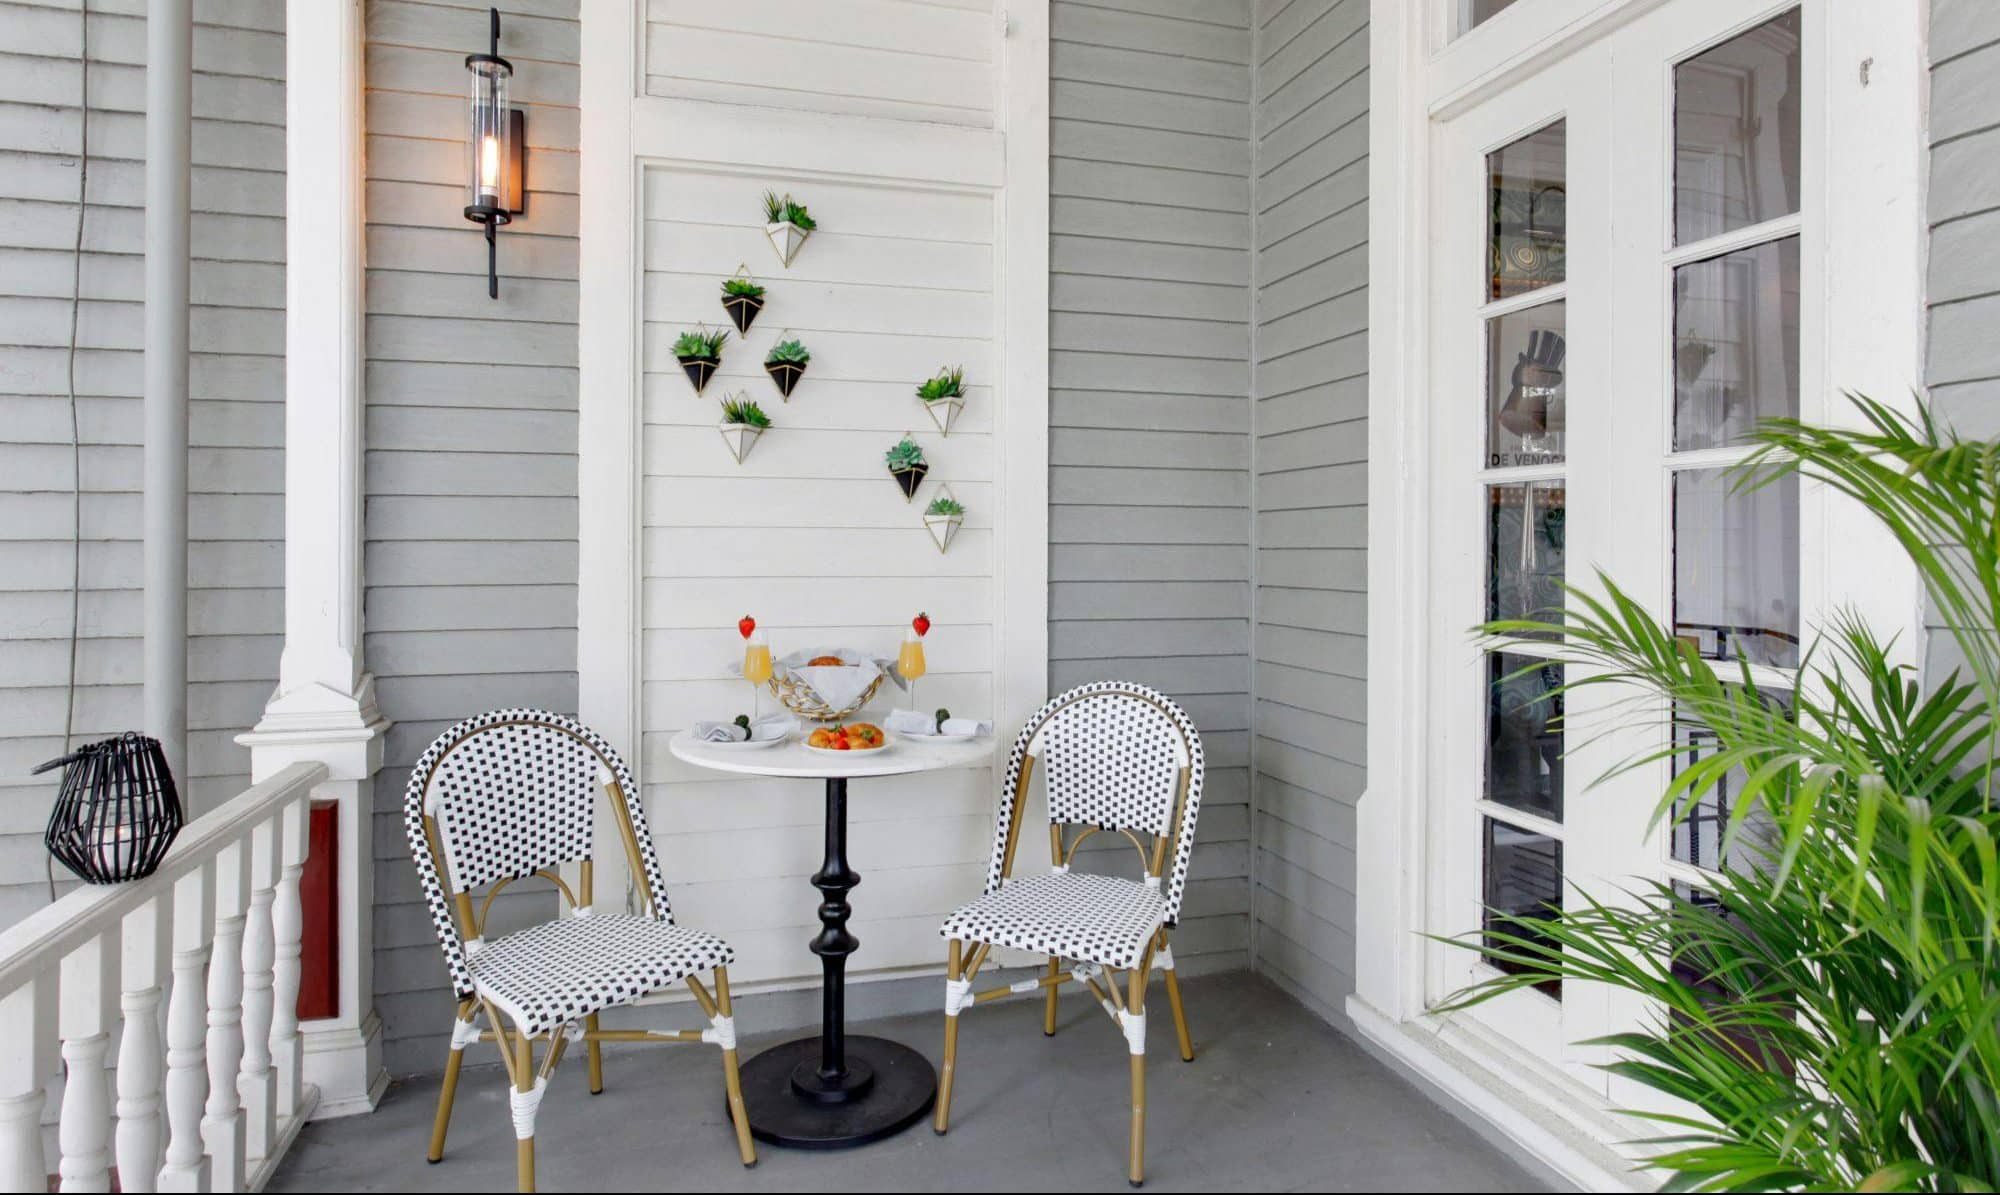 Two chairs sit side-by-side with a table in between on the front porch of an Heirloom Savannah home. Cocktails are on the table and a plant wall hangs behind the tableau.